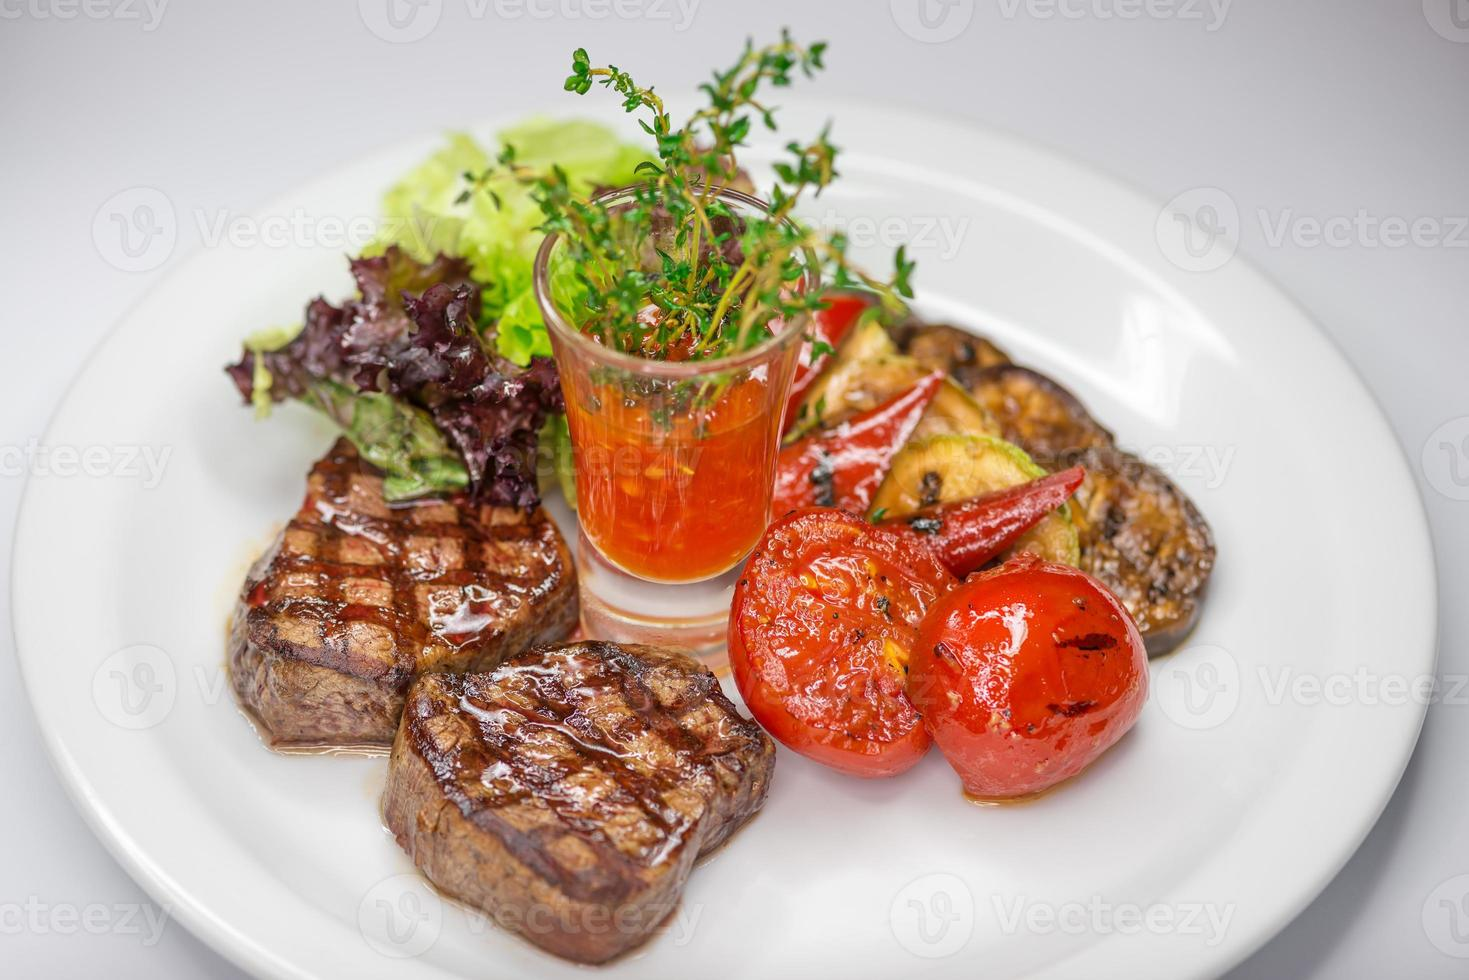 steak and vegetables photo